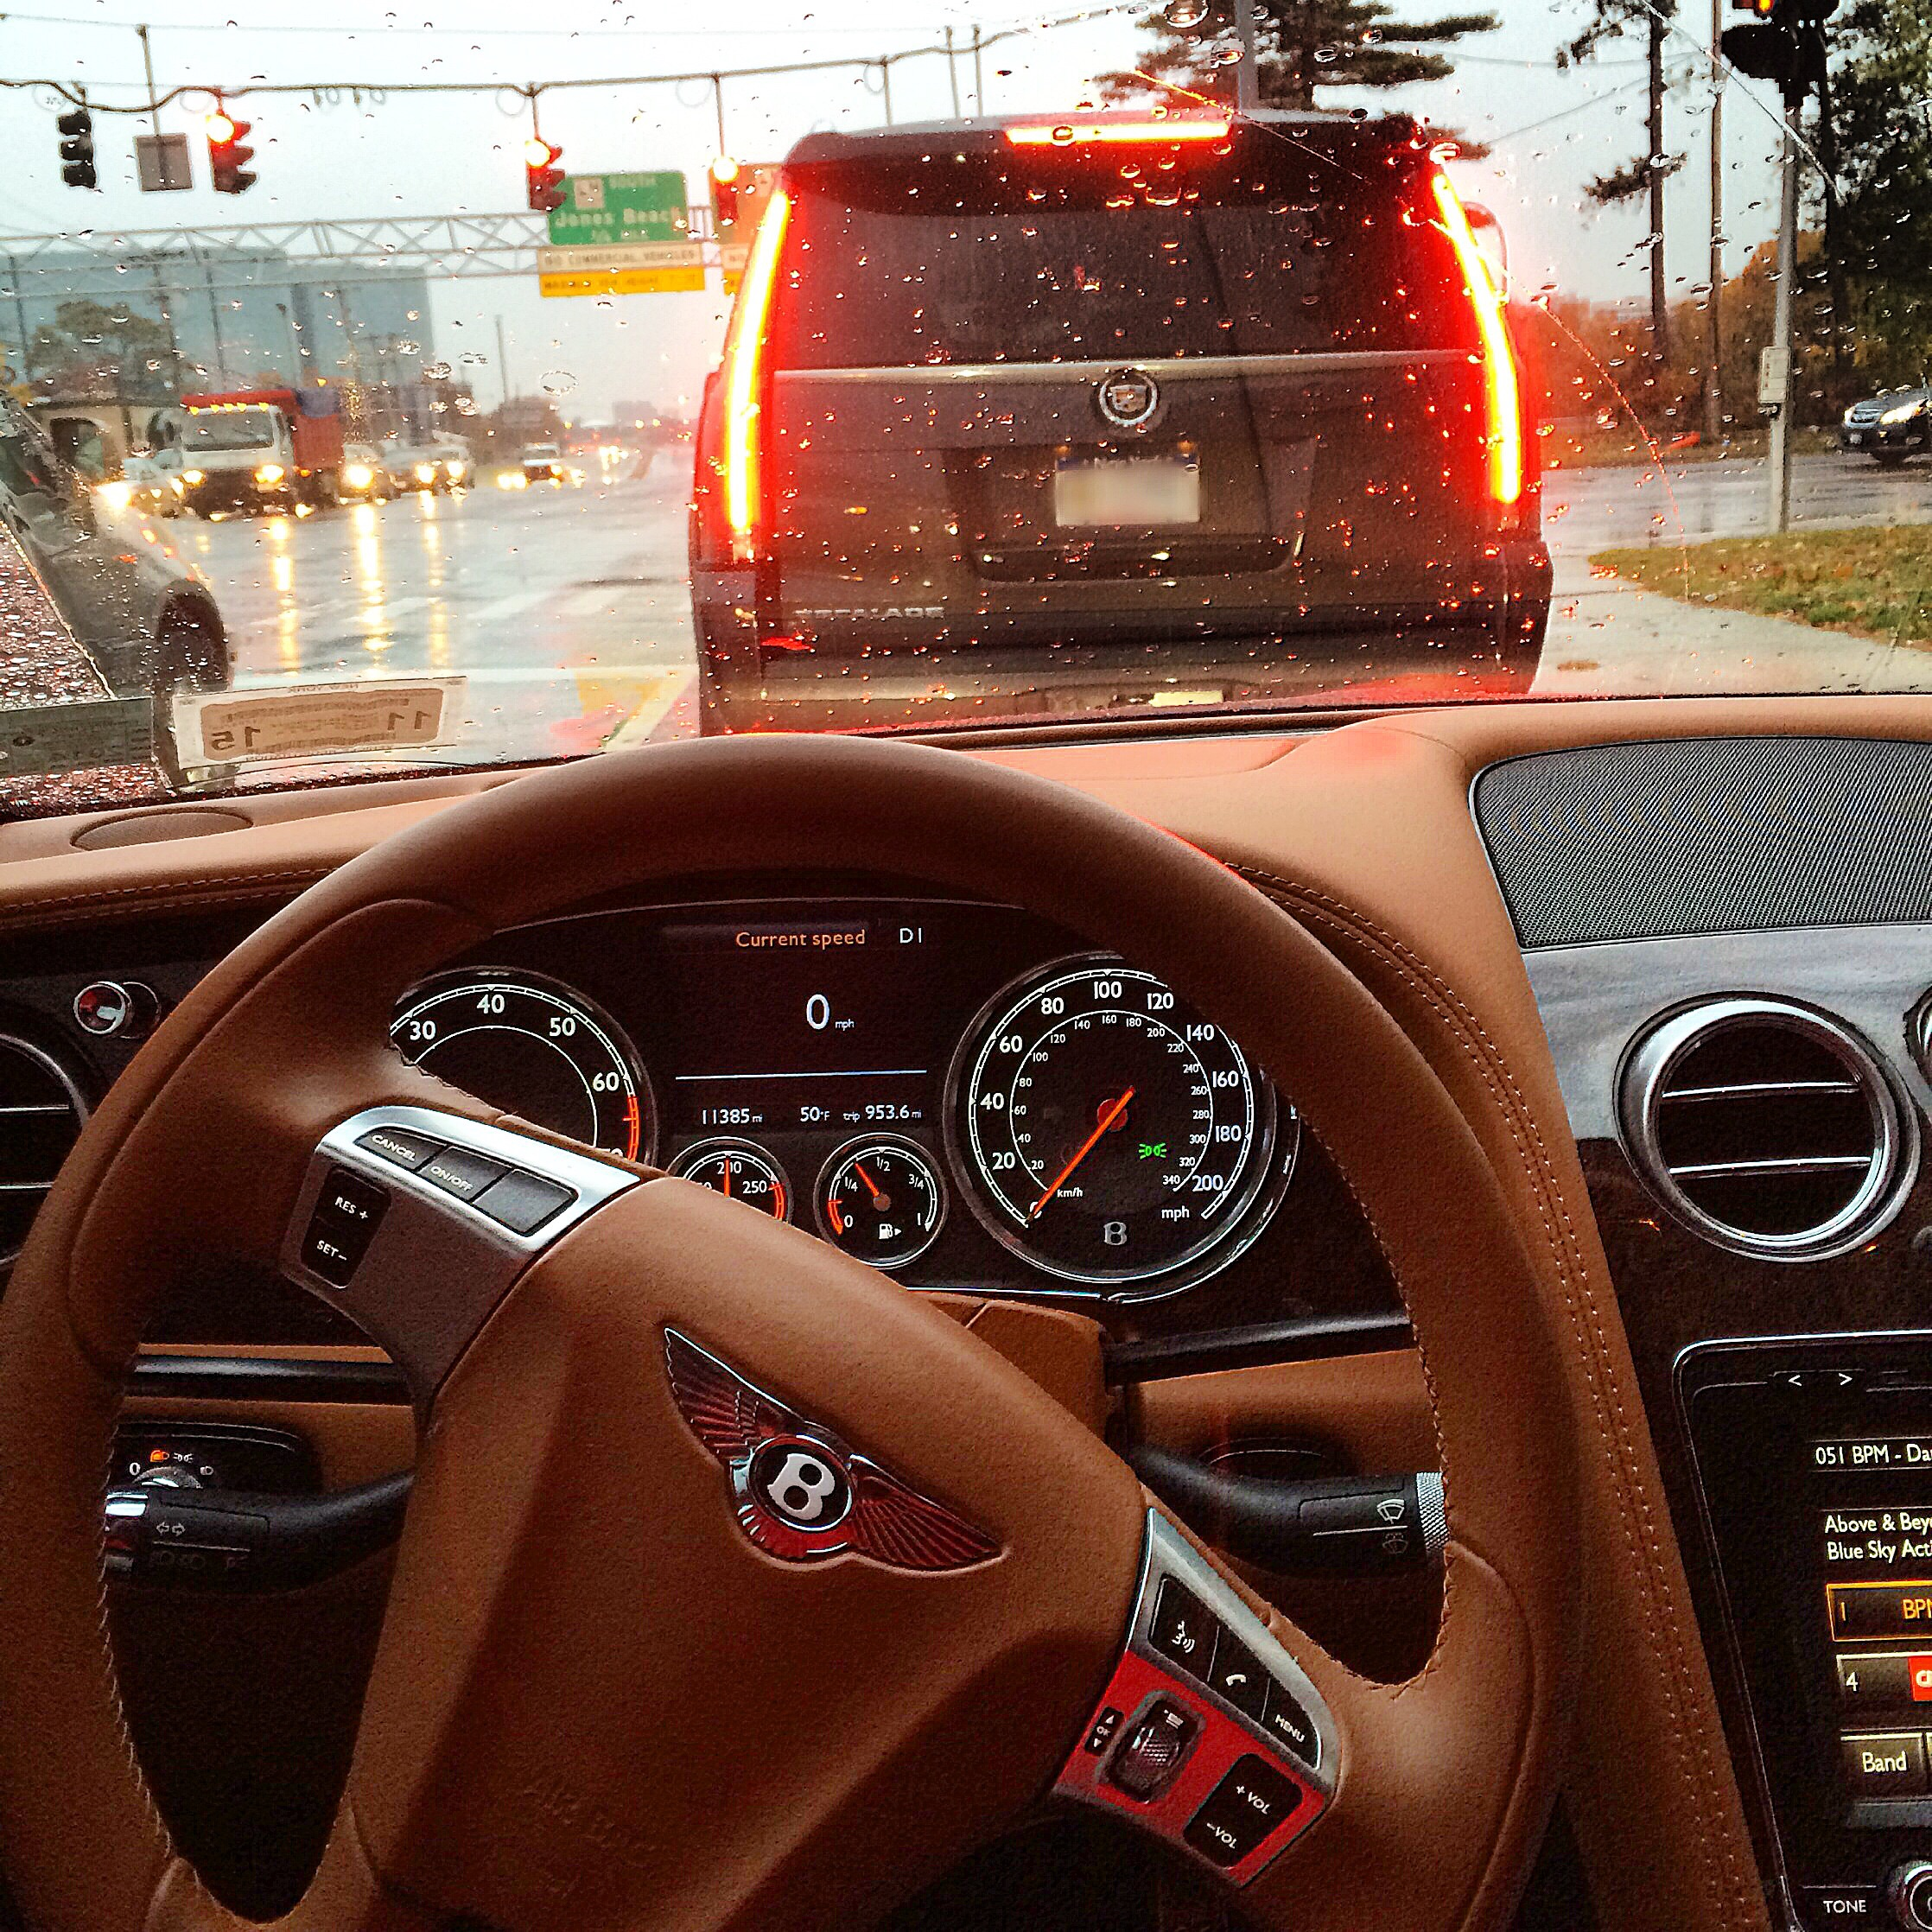 Bentley Flying Spur Tuning Ab 2015: Chauffeured Executive Transportation